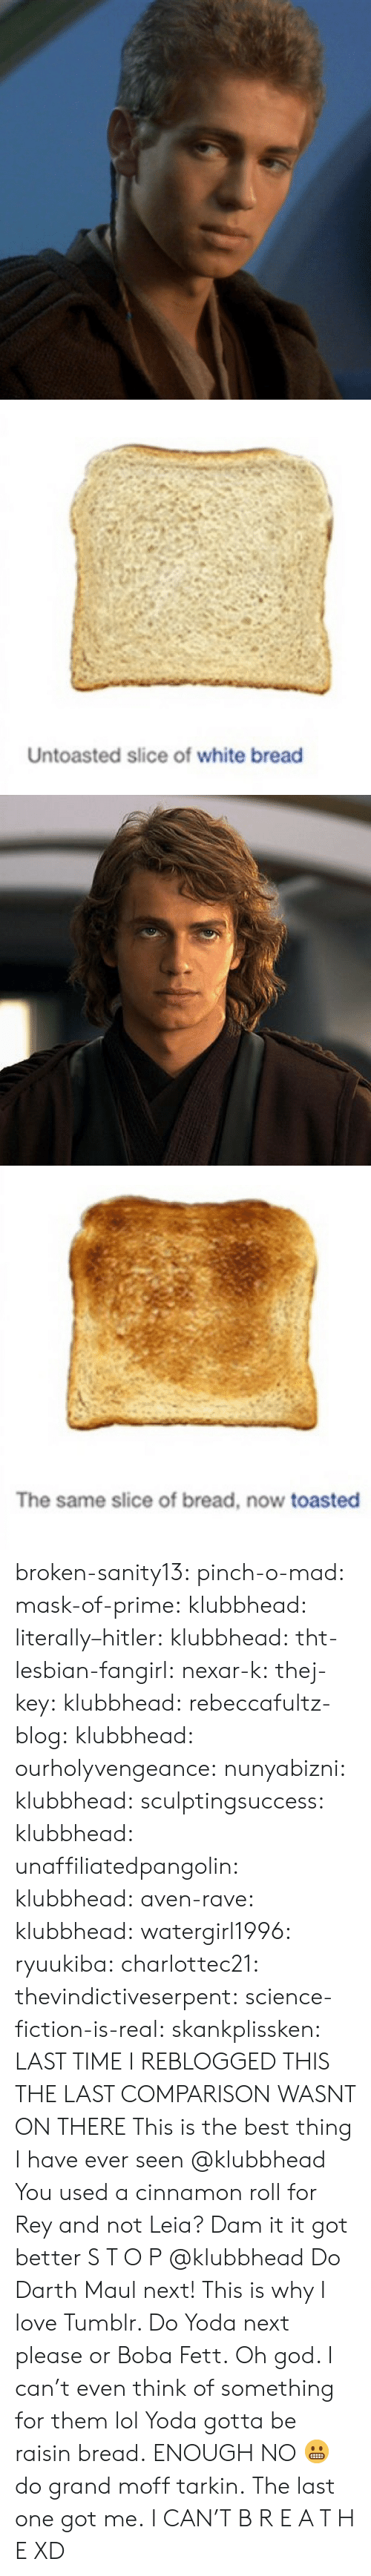 aven: Untoasted slice of white bread   The same slice of bread, now toasted broken-sanity13:  pinch-o-mad:   mask-of-prime:  klubbhead:  literally–hitler:  klubbhead:  tht-lesbian-fangirl:  nexar-k:  thej-key:  klubbhead:  rebeccafultz-blog:   klubbhead:  ourholyvengeance:  nunyabizni:  klubbhead:  sculptingsuccess:  klubbhead:   unaffiliatedpangolin:  klubbhead:  aven-rave:  klubbhead:   watergirl1996:  ryuukiba:  charlottec21:  thevindictiveserpent:  science-fiction-is-real:  skankplissken:                   LAST TIME I REBLOGGED THIS THE LAST COMPARISON WASNT ON THERE    This is the best thing I have ever seen   @klubbhead You used a cinnamon roll for Rey and not Leia?    Dam it it got better   S T O P  @klubbhead Do Darth Maul next!   This is why I love Tumblr. Do Yoda next please or Boba Fett.   Oh god. I can't even think of something for them lol  Yoda gotta be raisin bread.   ENOUGH   NO 😬 do grand moff tarkin.     The last one got me.   I CAN'T  B R E A T H E  XD